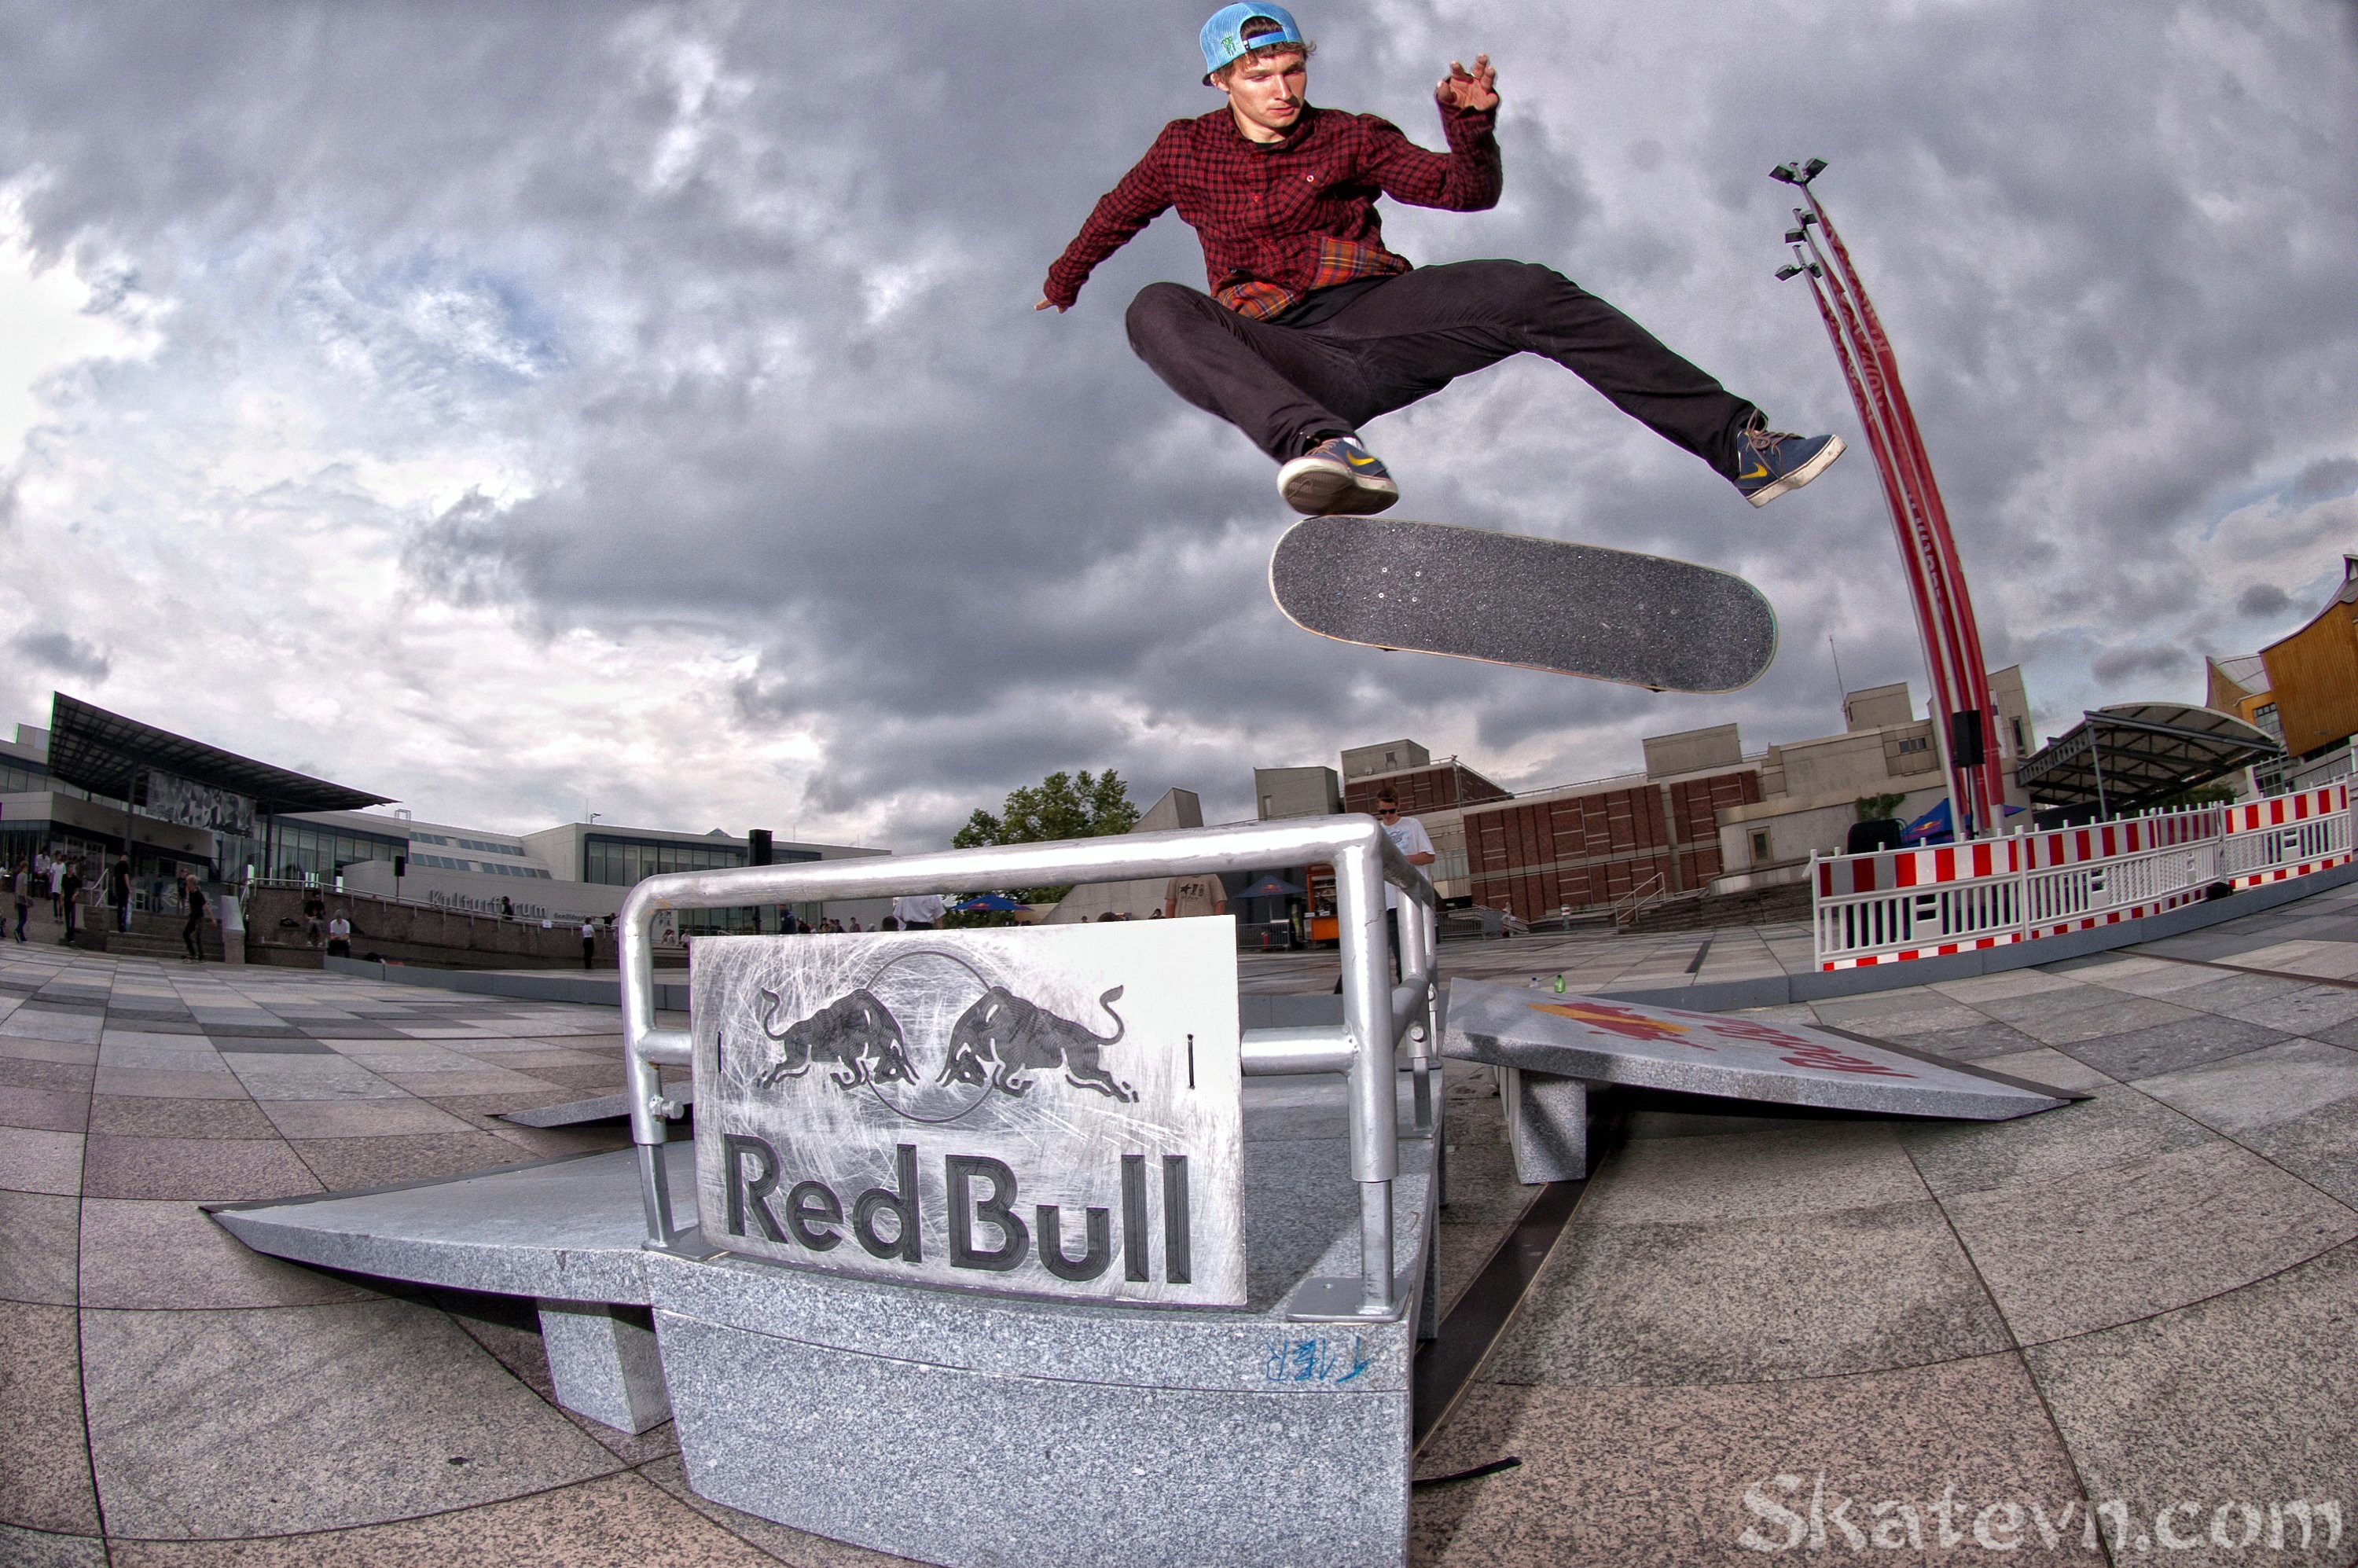 Shane O'Neil - Switch Flip